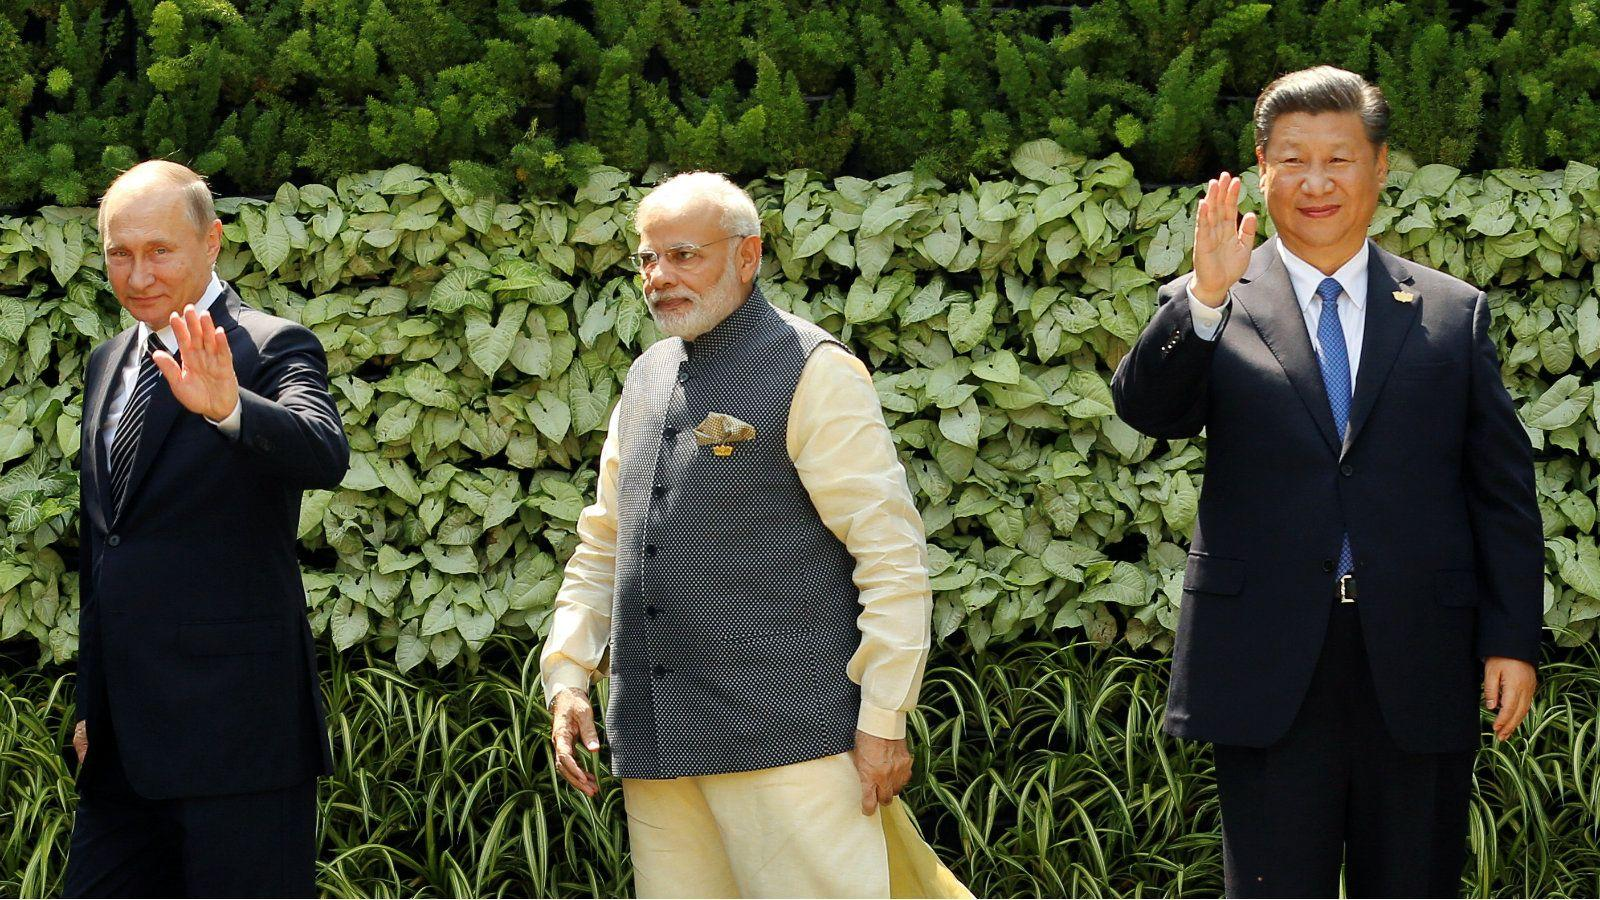 Welcome to an emerging Asia: India and China stop feigning friendship while Russia plays all sides